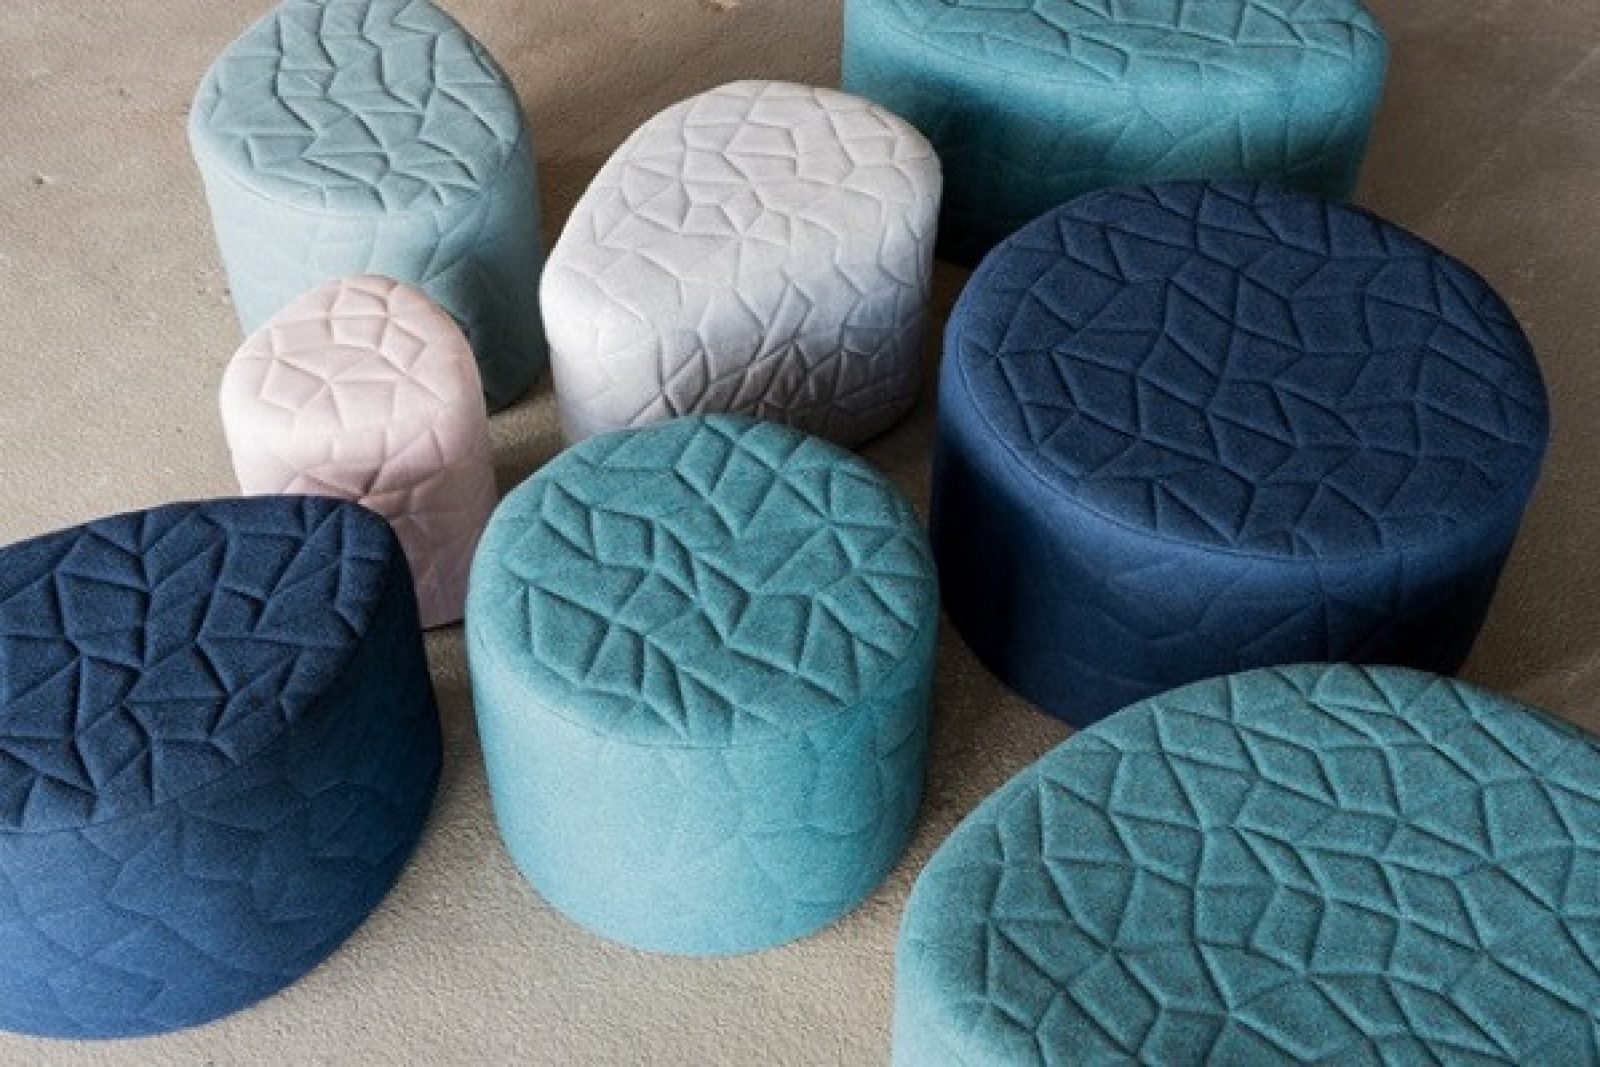 SWOLL sculptural ottomans by Christine Bricknell. Photo: Lean Timms